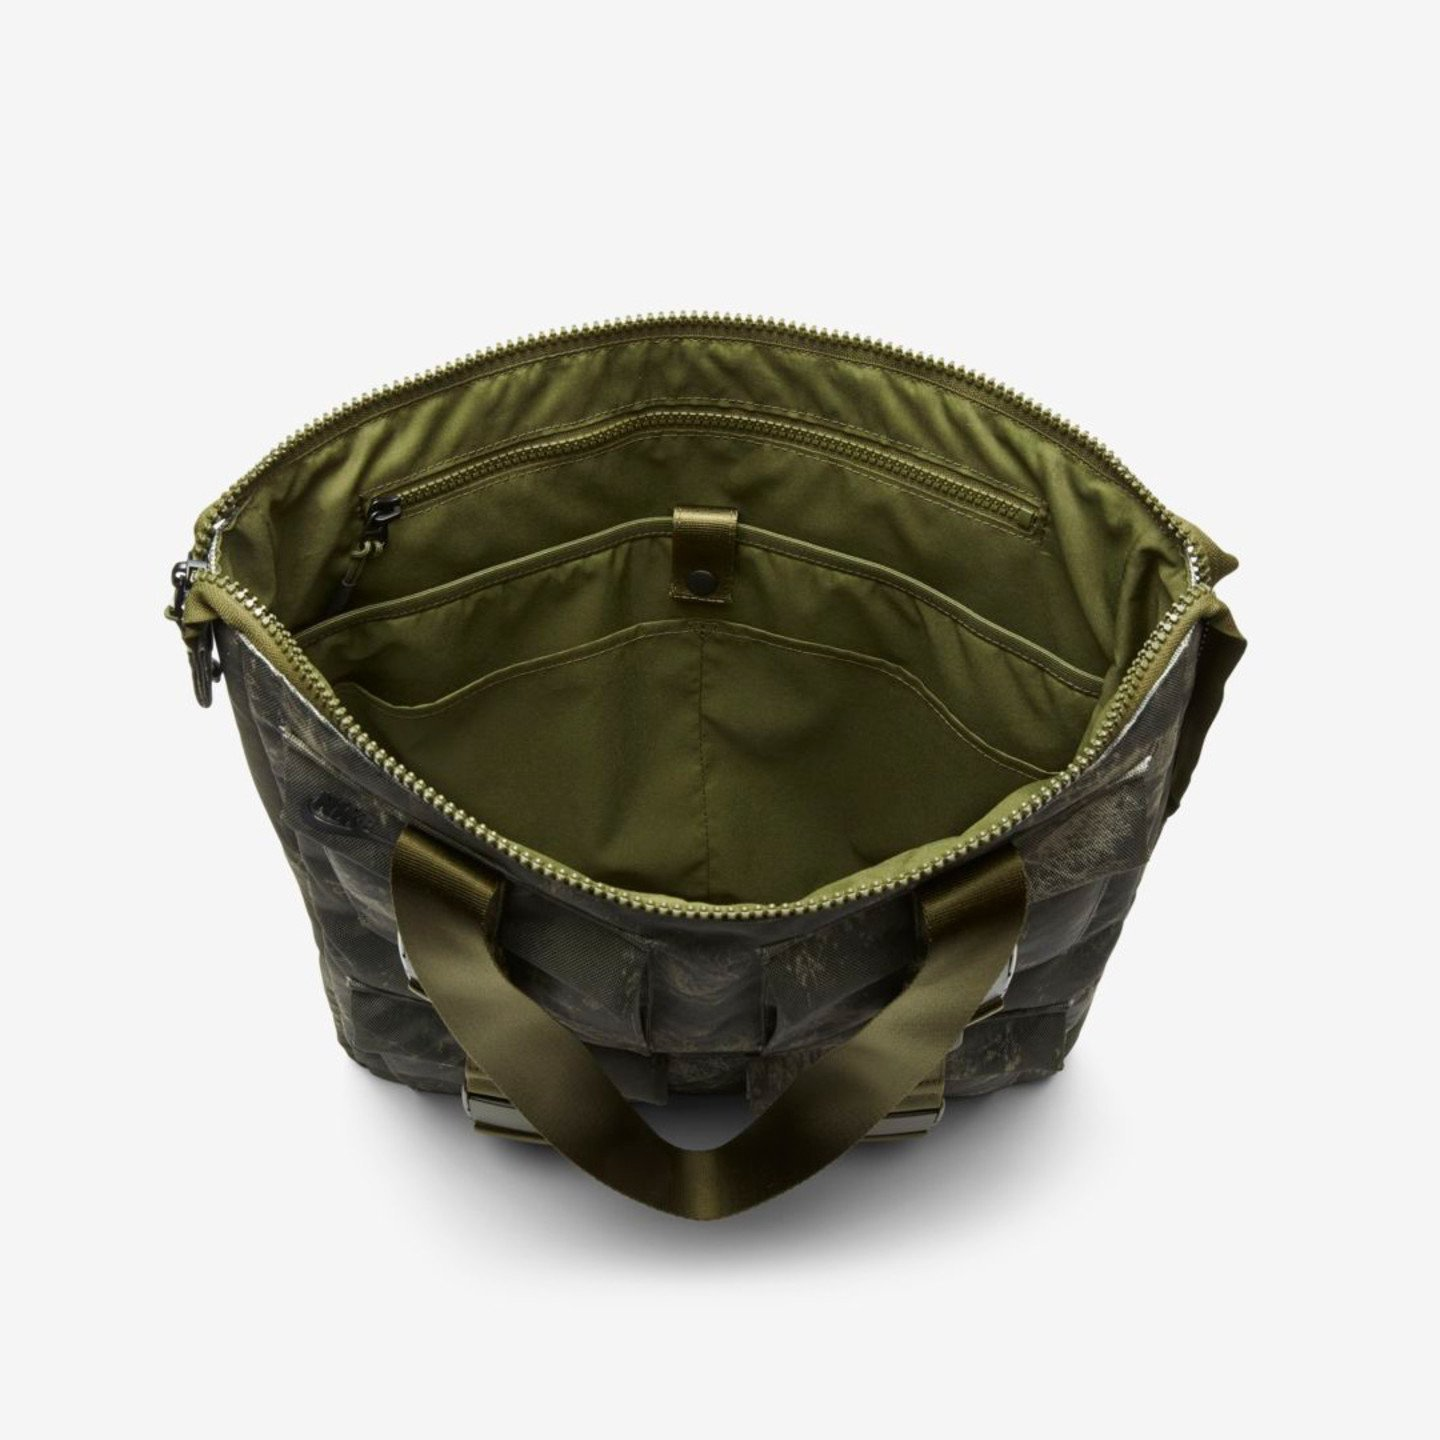 Nike Tote Bag 'Realtree Camo' Olive Canvas / Olive BA6378-395